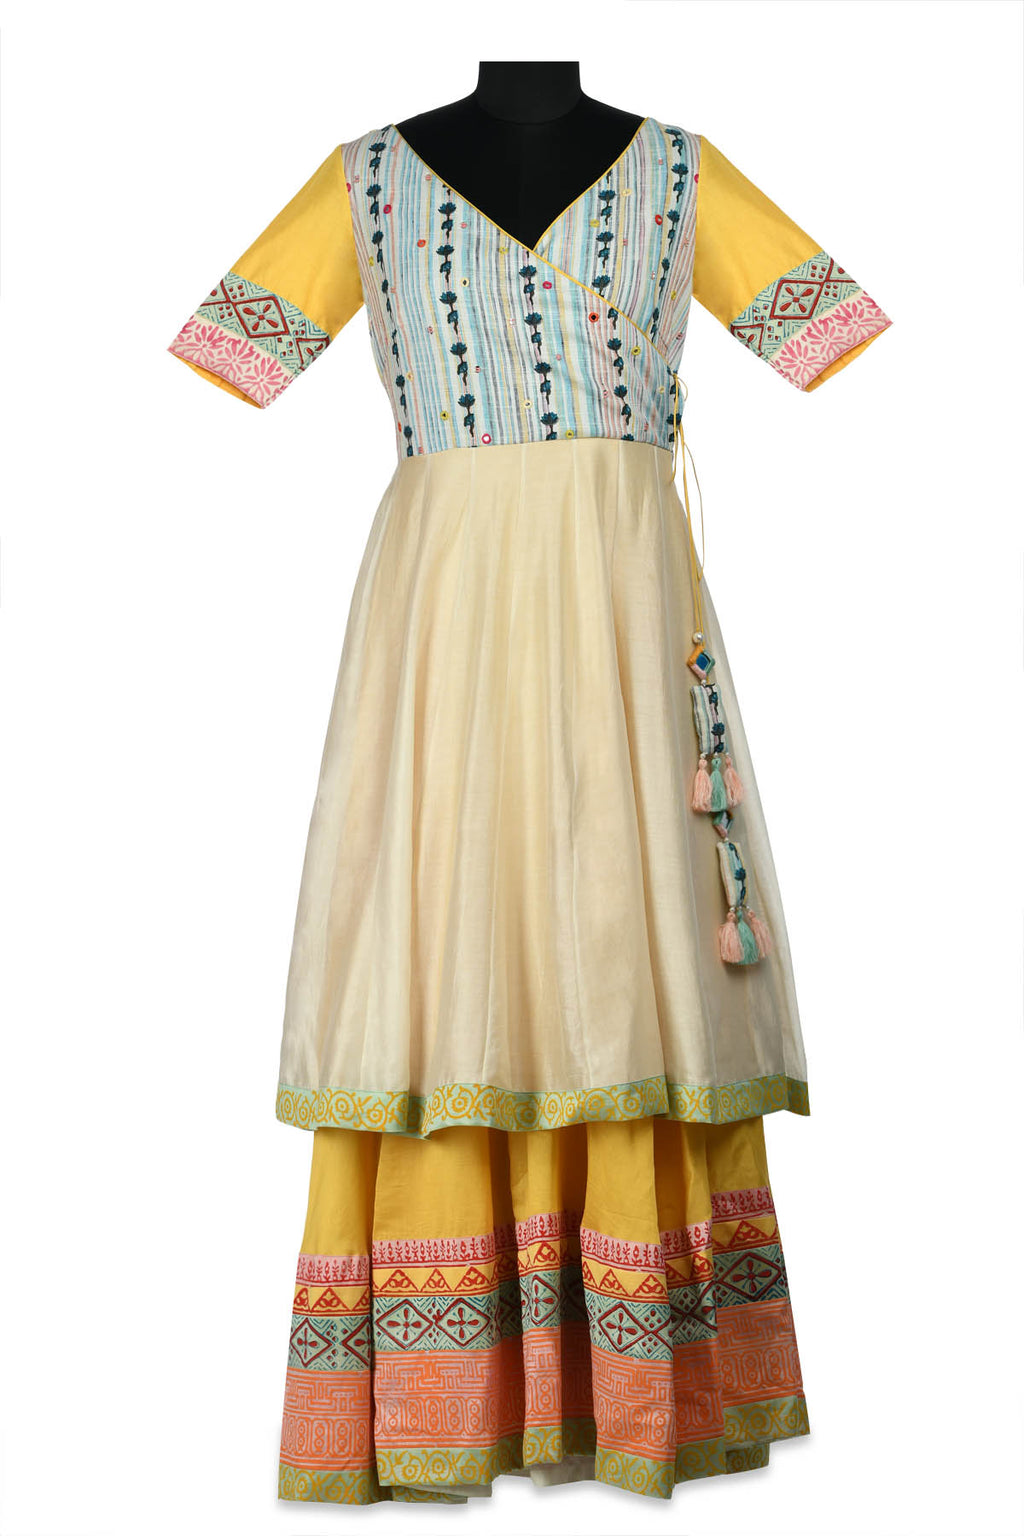 Buy gorgeous ivory and multi printed double layered Anarkali online in USA. Shine at weddings and special occasions with beautiful Indian designer Anarkali suits, salwar suits, sharara suits, designer lehengas from Pure Elegance Indian clothing store in USA.-full view